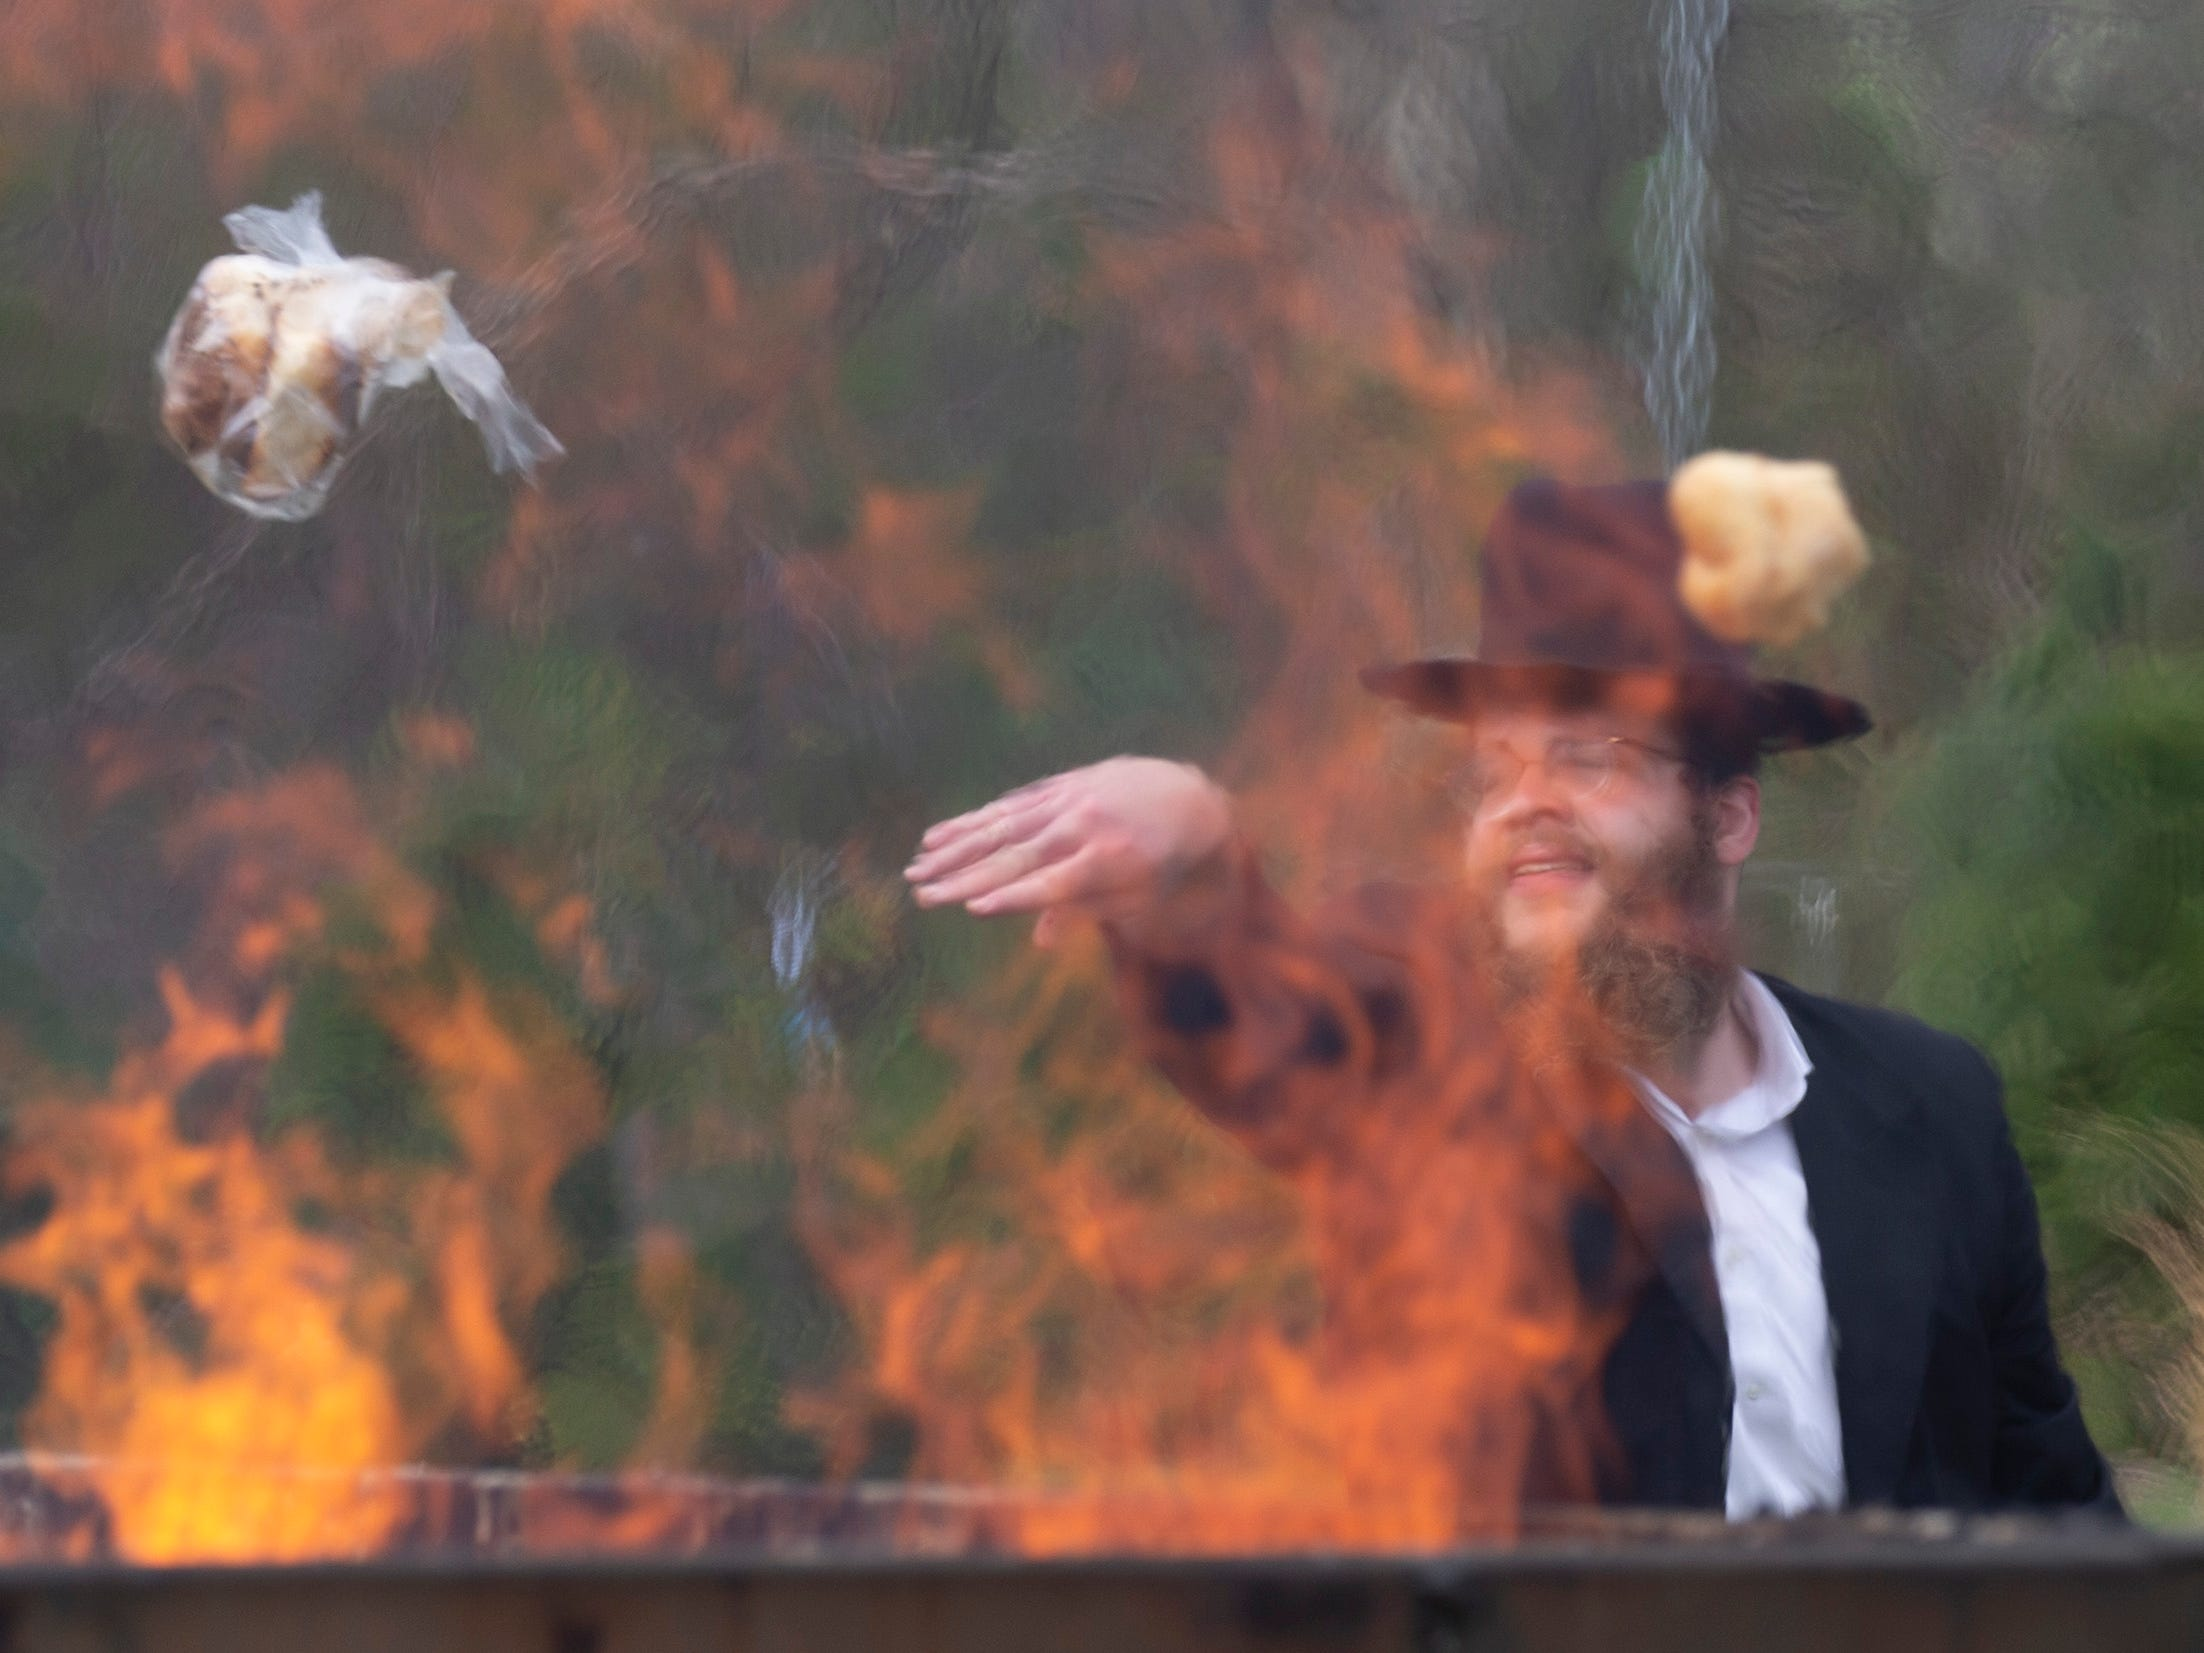 The Orthodox Jewish Community in Lakewood held it's annual burning of all leavened breads before the start of the celebration of passover Friday night. The fire department assisted with the fires to make sure it was done safely. Thousands brought all leaven products for the fires in keeping with the religious commandment that it must be burned.